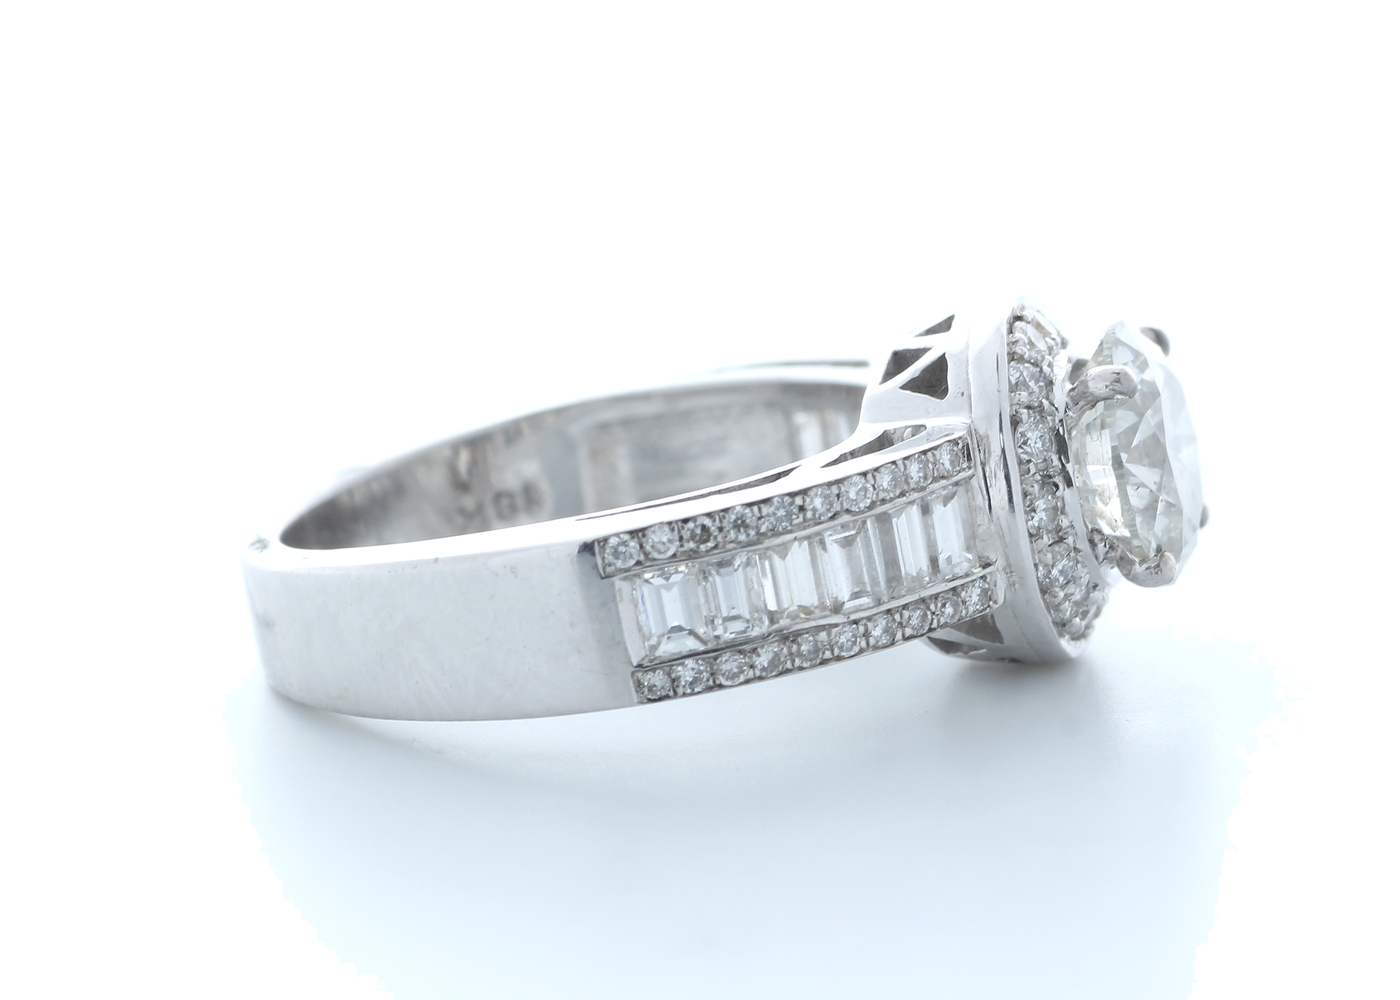 18ct White Gold Single Stone With Halo Setting Ring 2.62 (1.22) Carats - Image 4 of 5